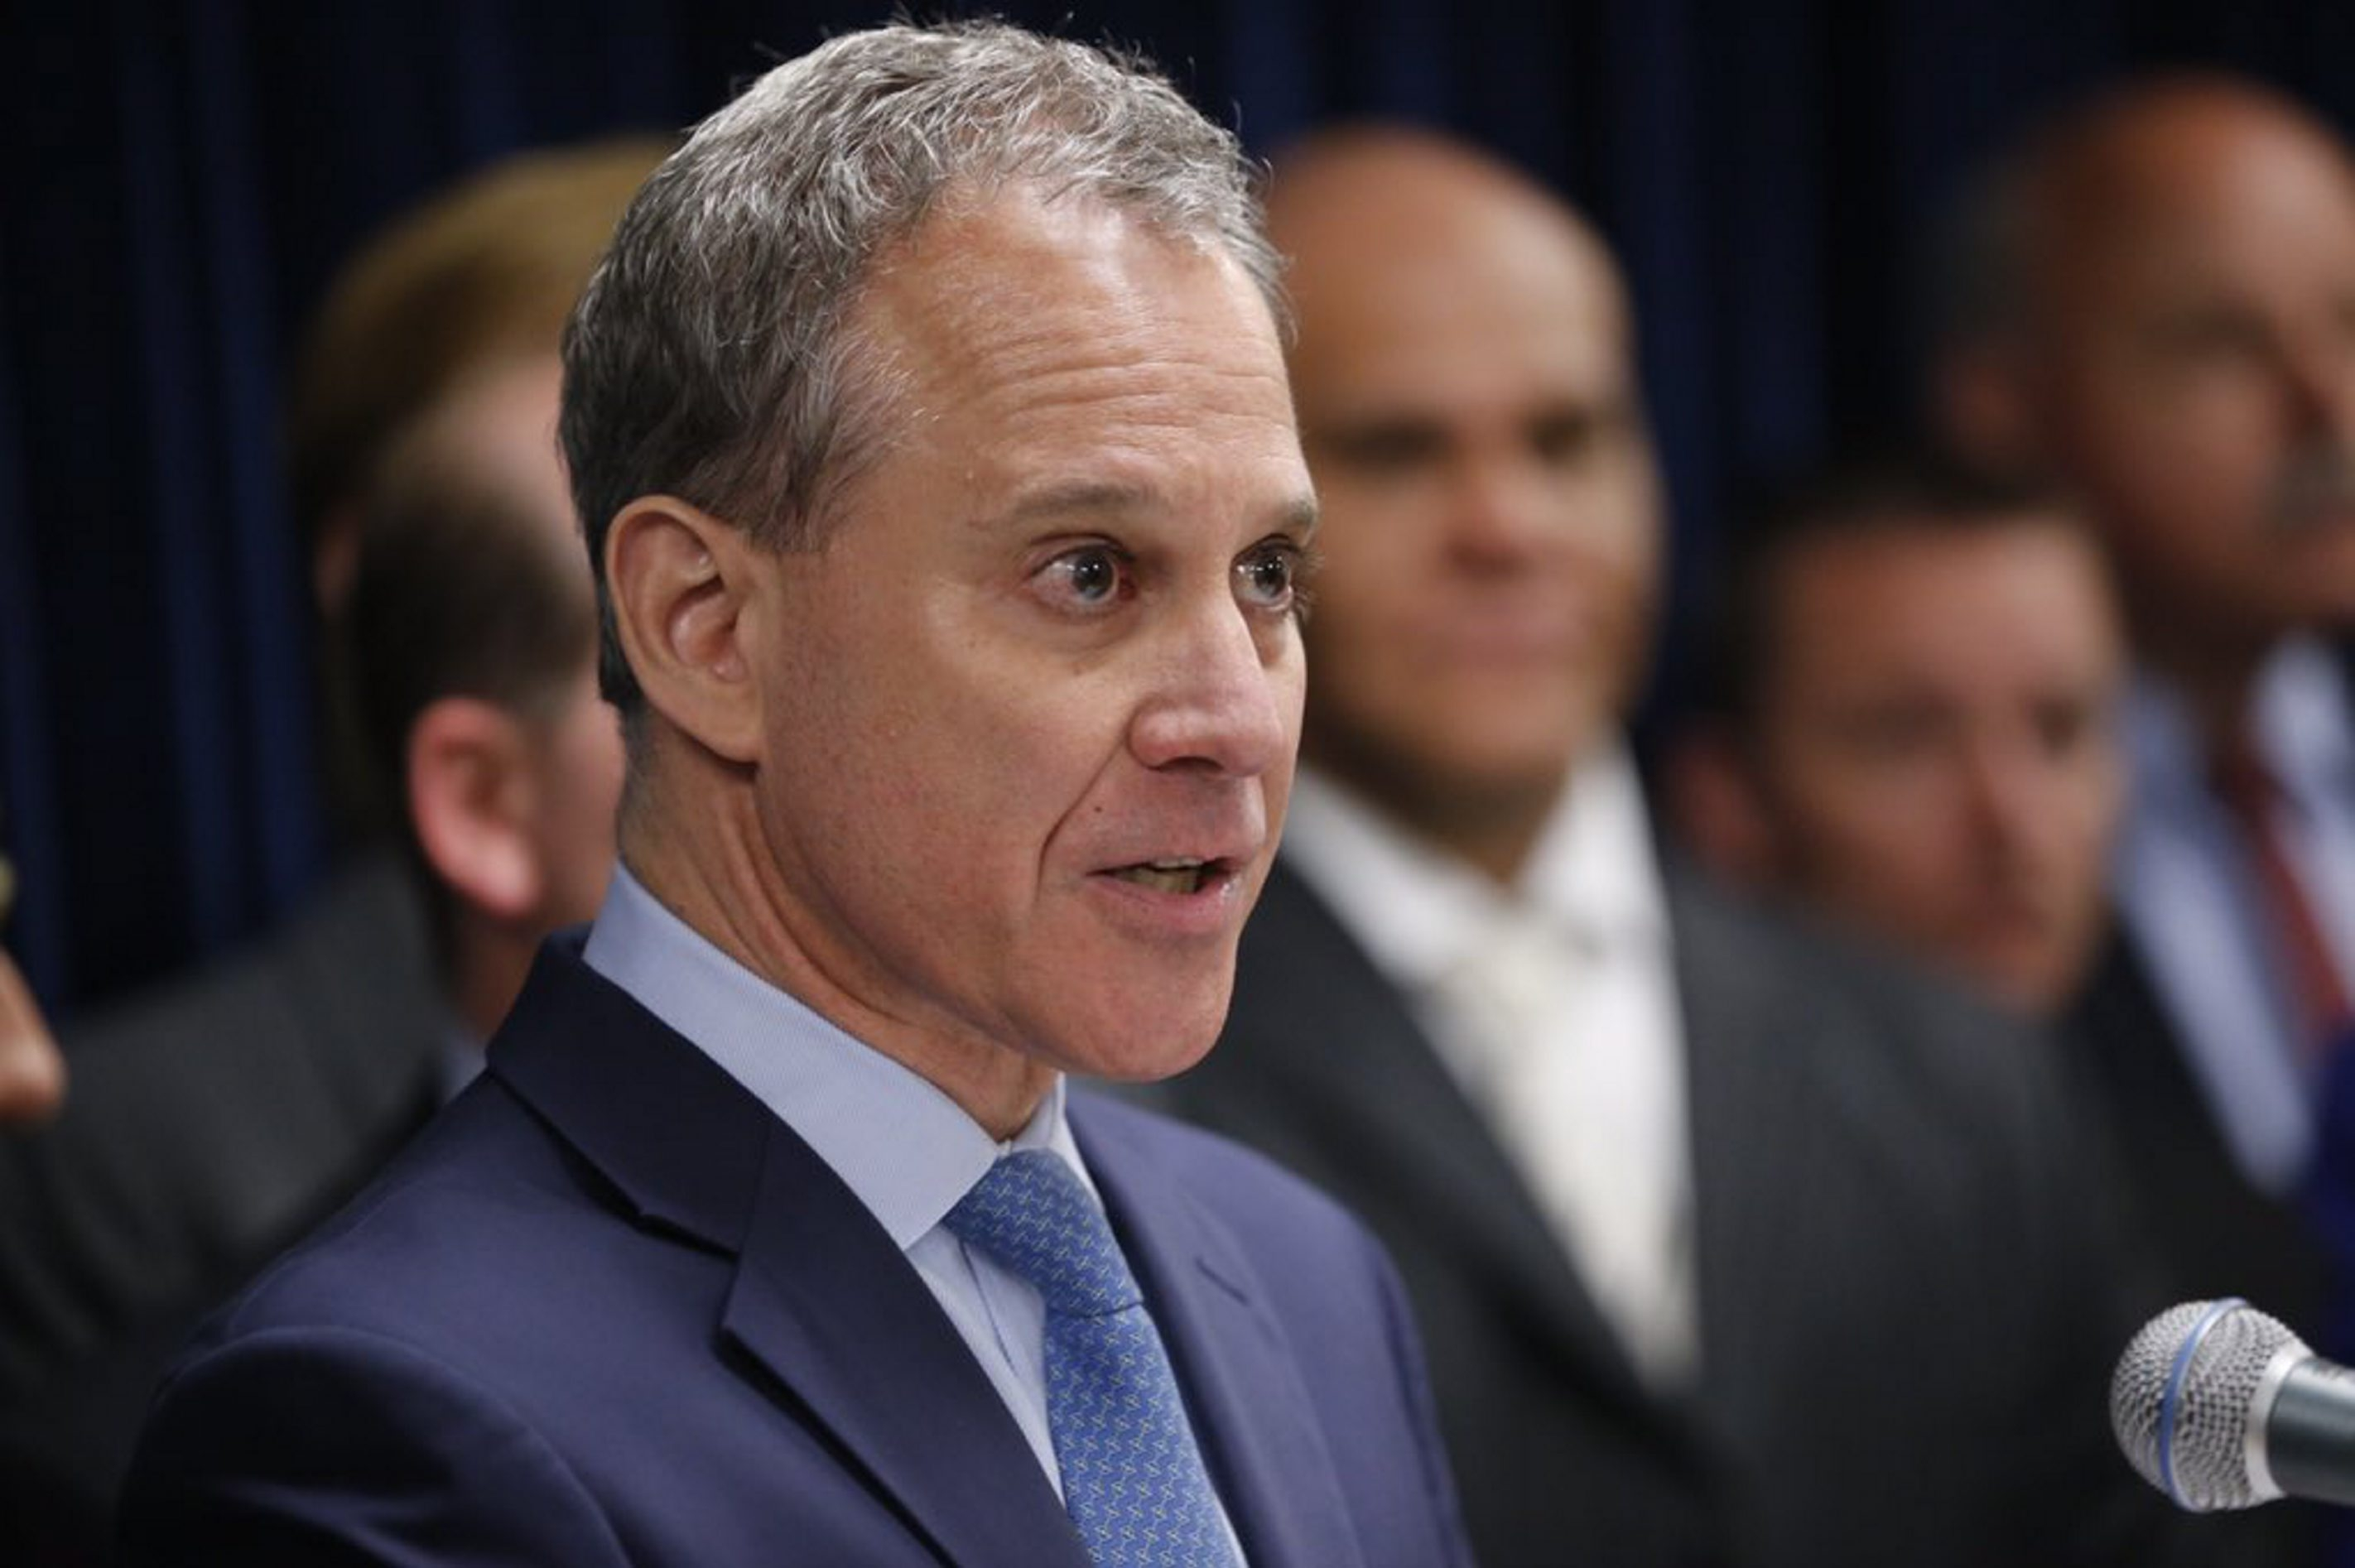 Attorney General Eric Schneiderman speaks at a news conference in Buffalo on Thursday to discuss the corruption cases against G. Steven Pigeon and John Michalek . (Derek Gee/Buffalo News)